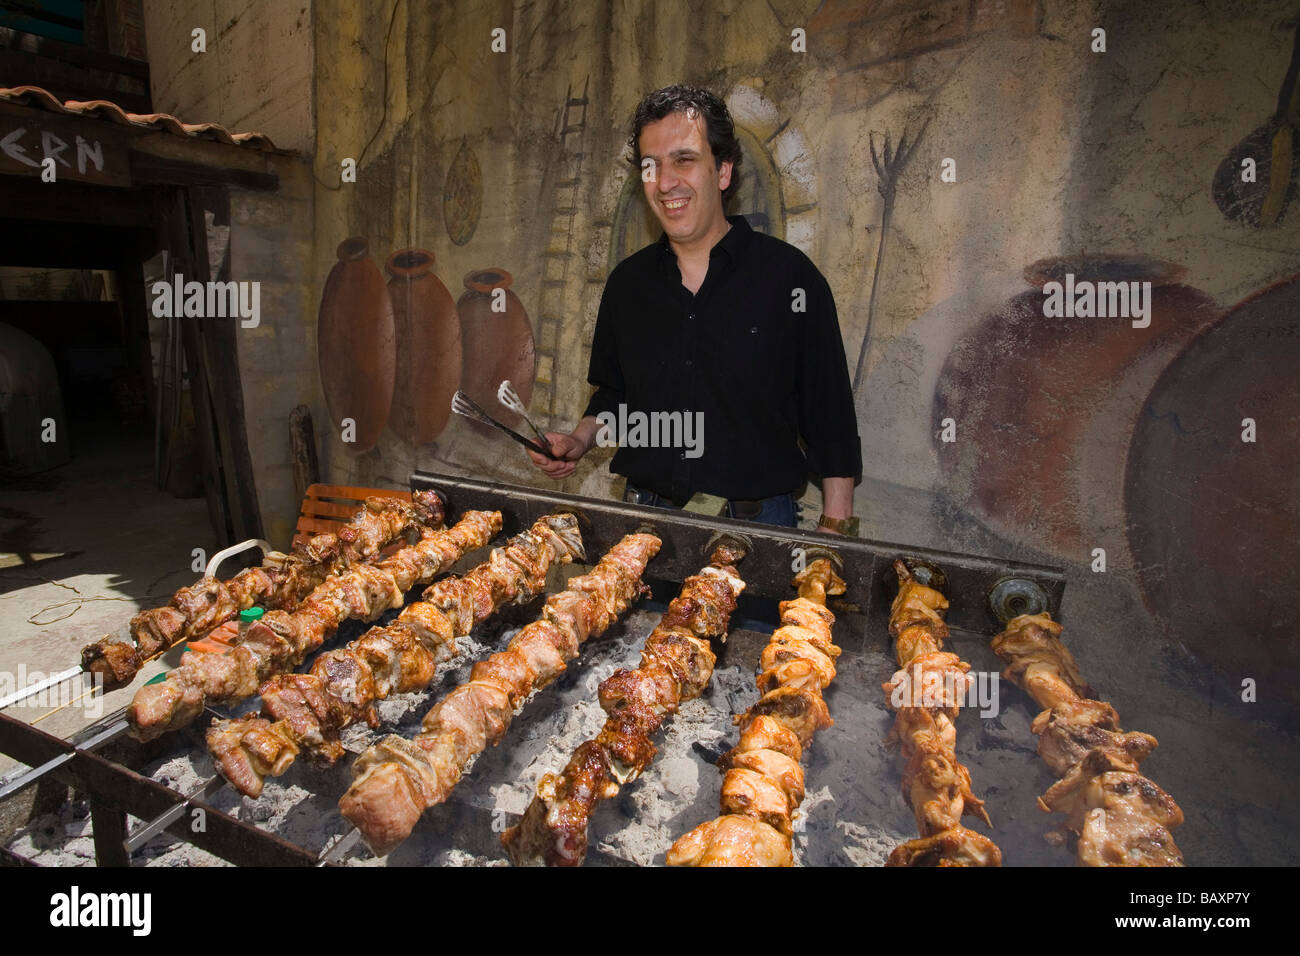 Agis Jacovides, managing director, at a charcoal grill full of quails, The Village Tavern, Pano Platres, South Cyprus, - Stock Image